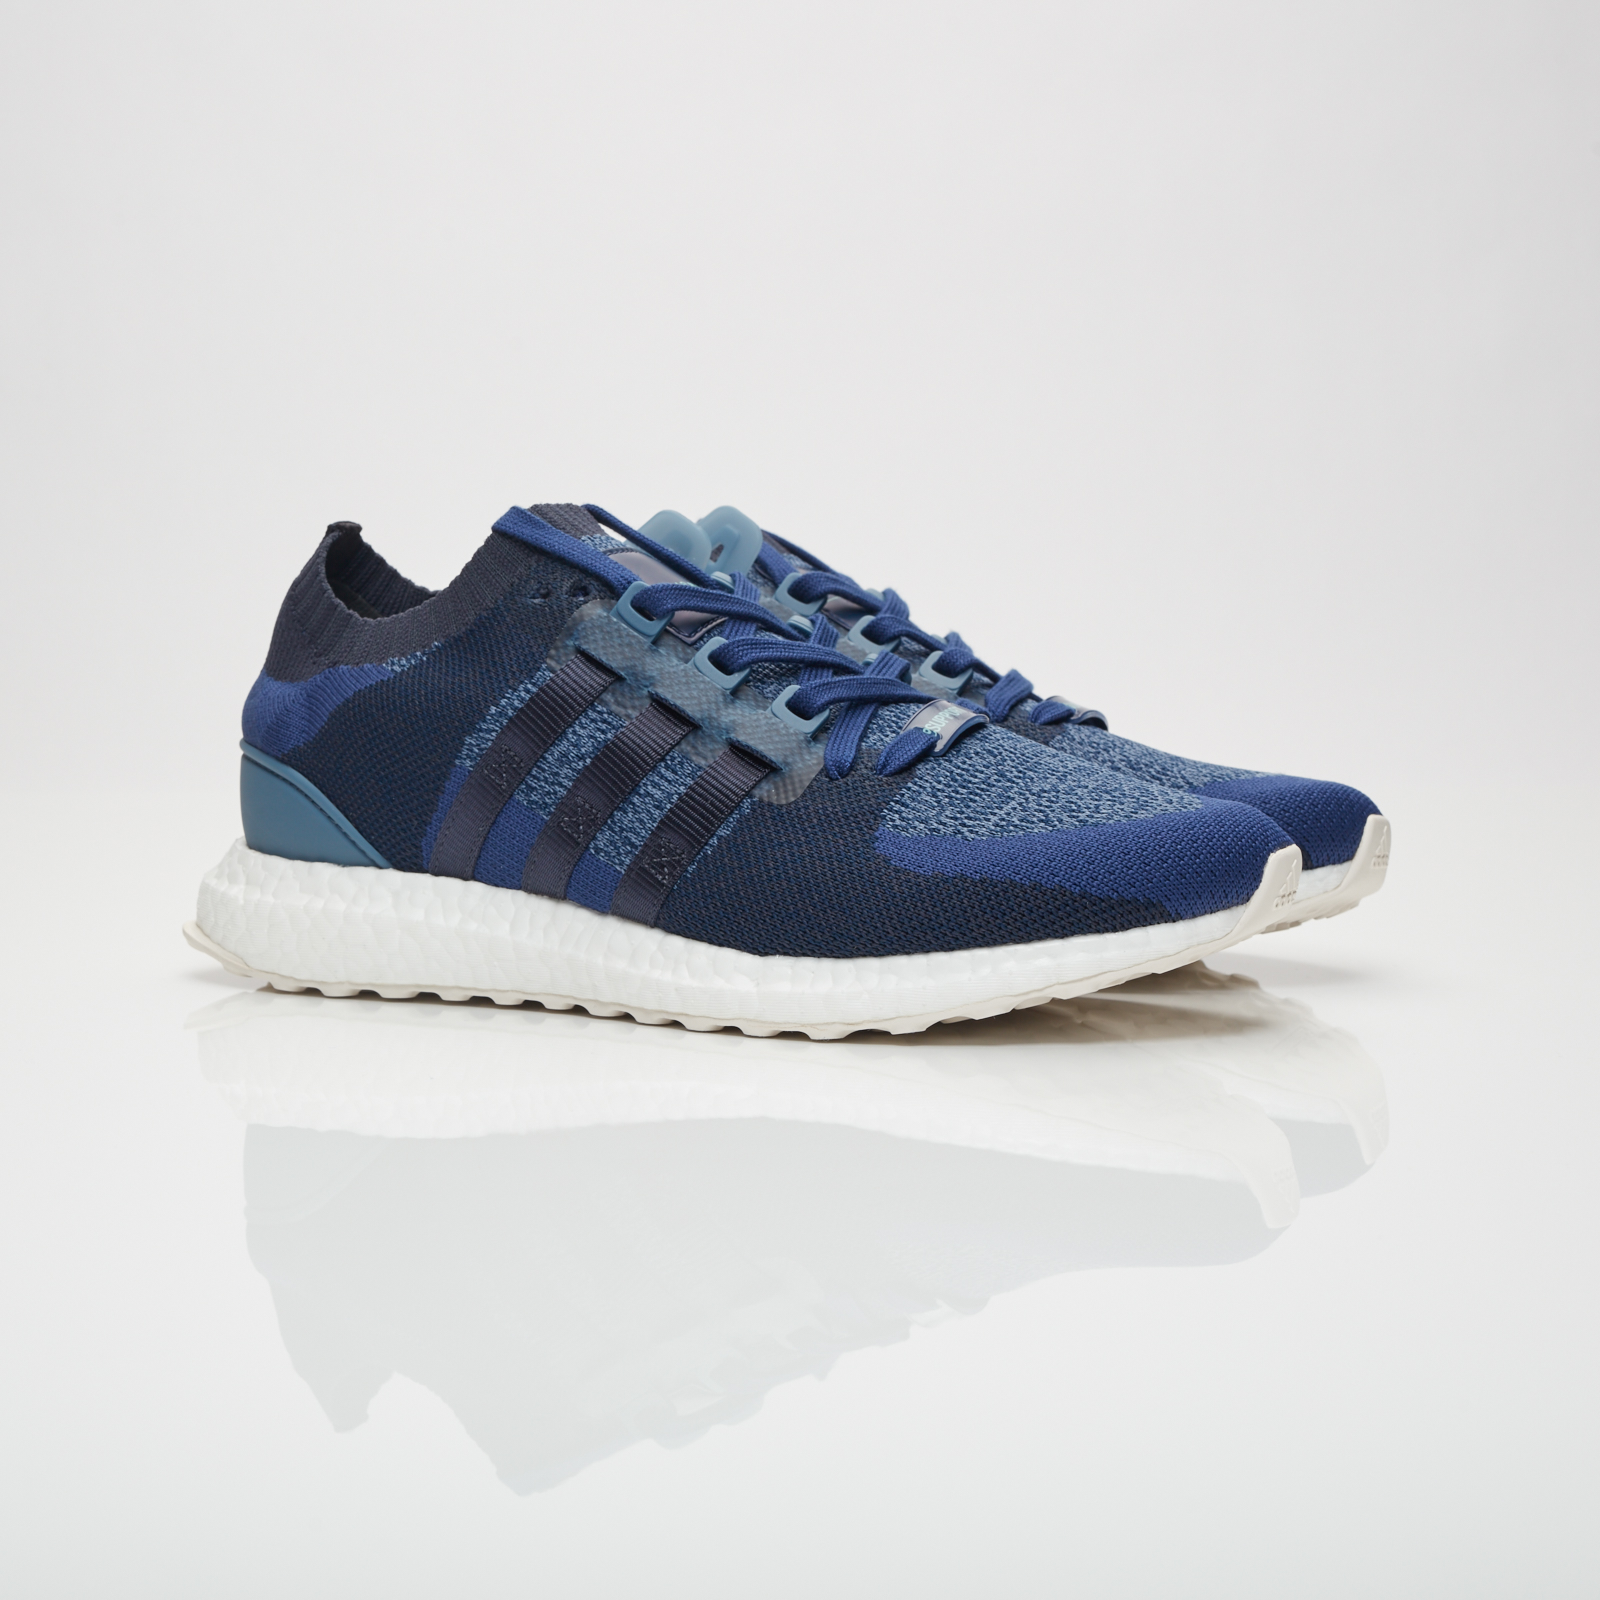 reputable site aa93a 13b5c adidas EQT Support Ultra Primeknit - Cq1895 - Sneakersnstuff ...